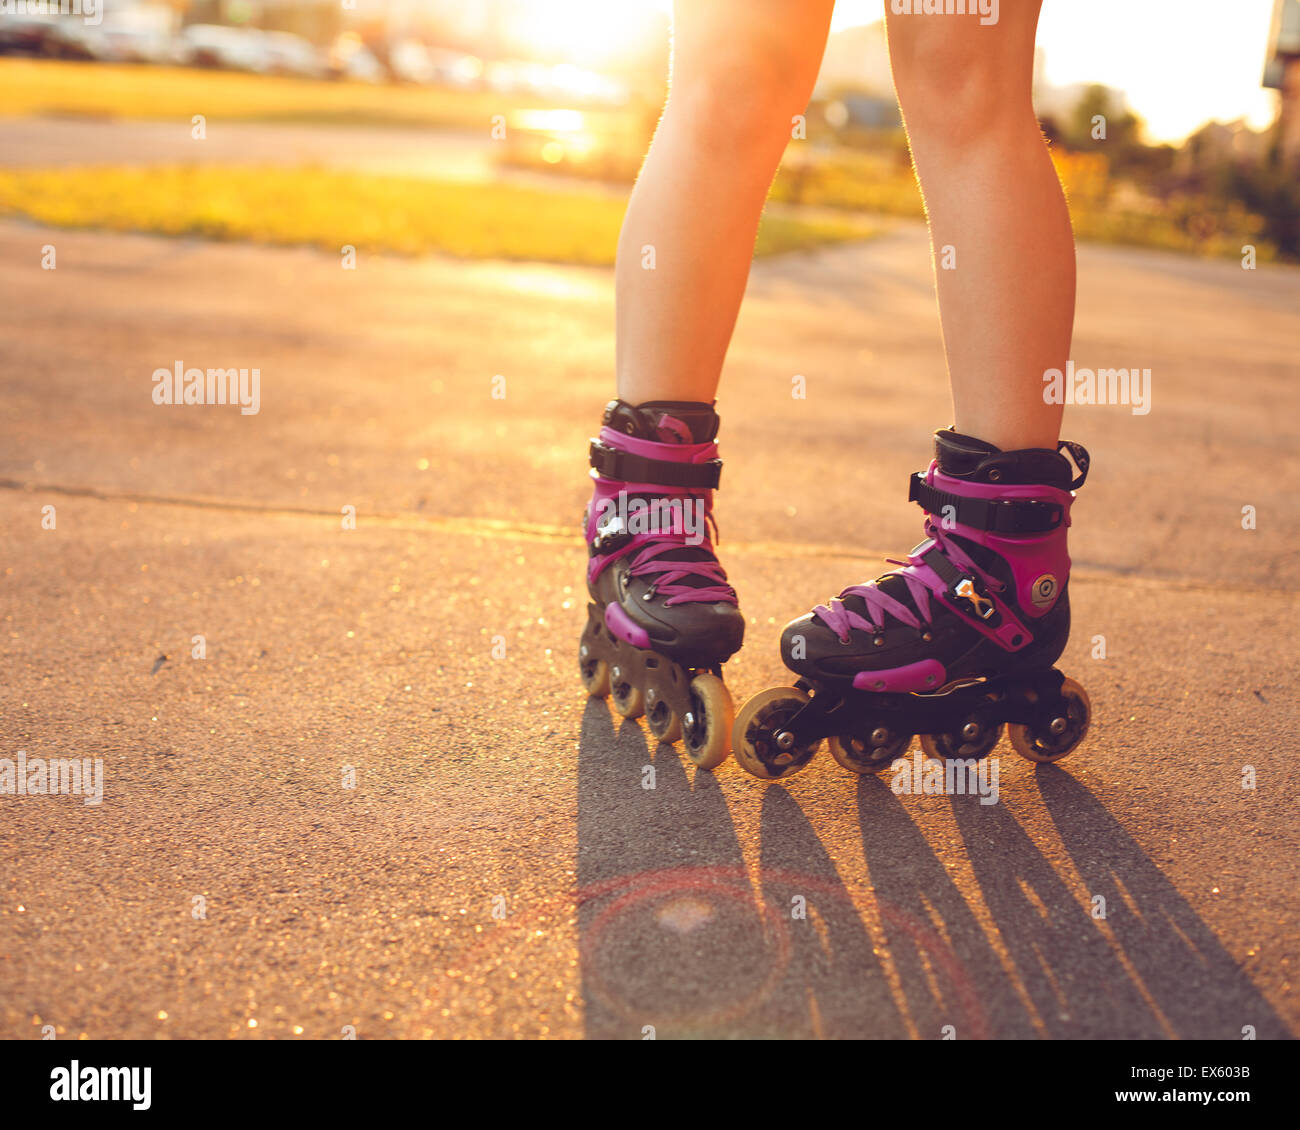 Close up on roller skate shoes - Stock Image